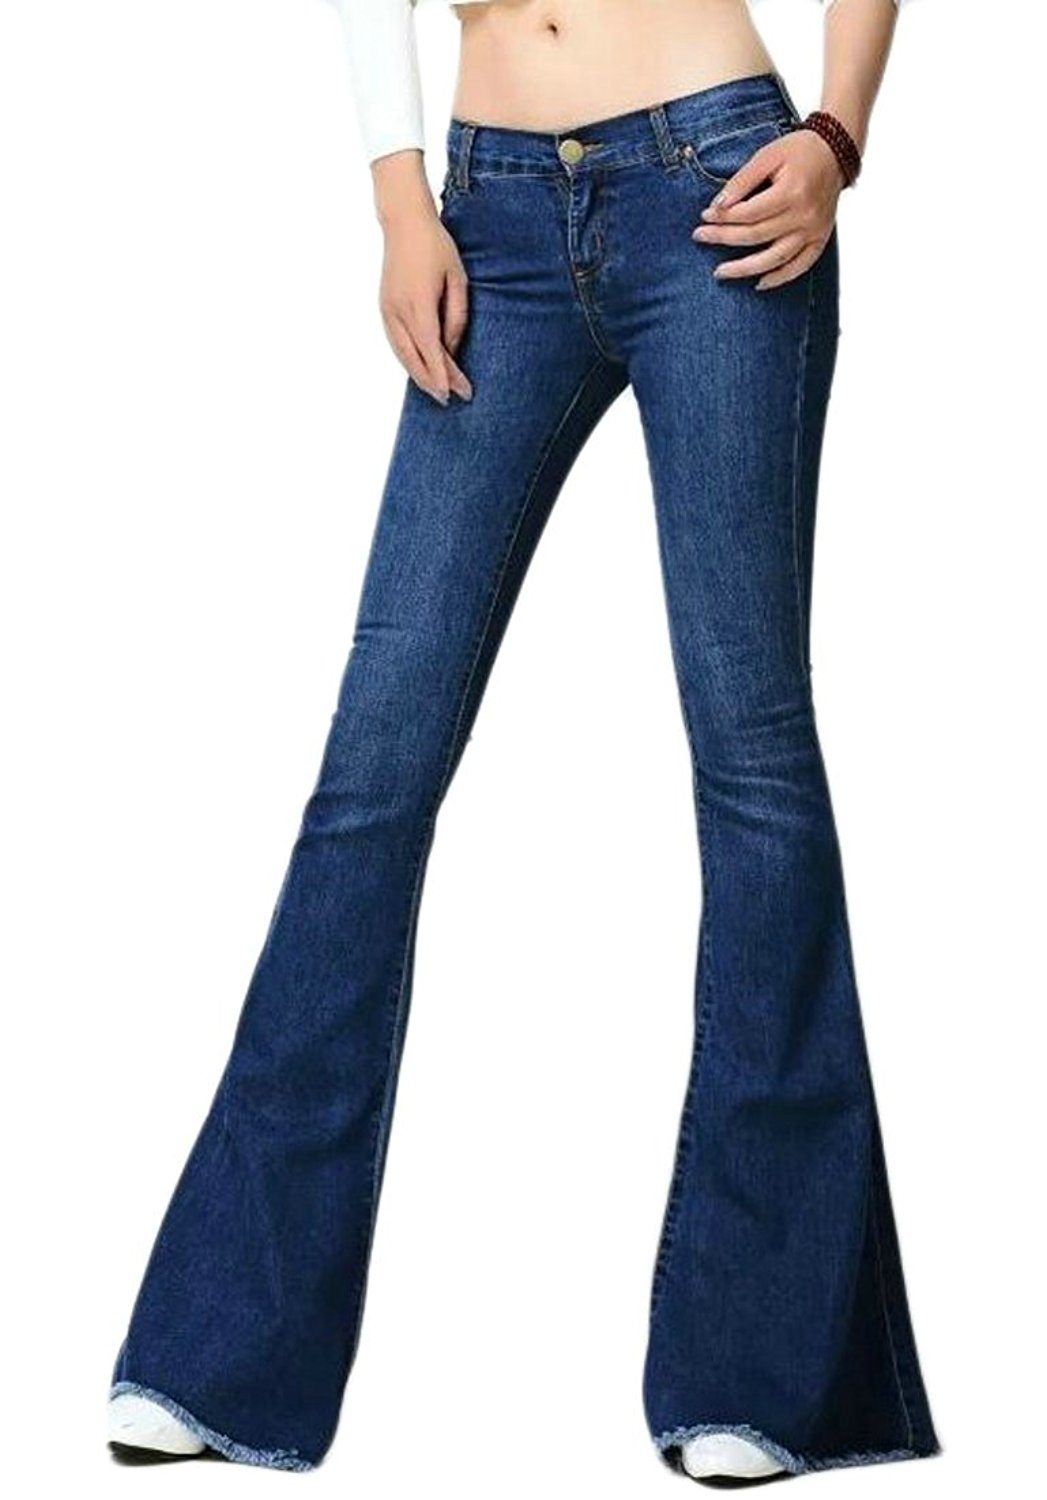 c996de9a050e8d Get Quotations · Cruiize Womens Washed Stretch Denim Bell Bottom Cutoff  Jeans Pant